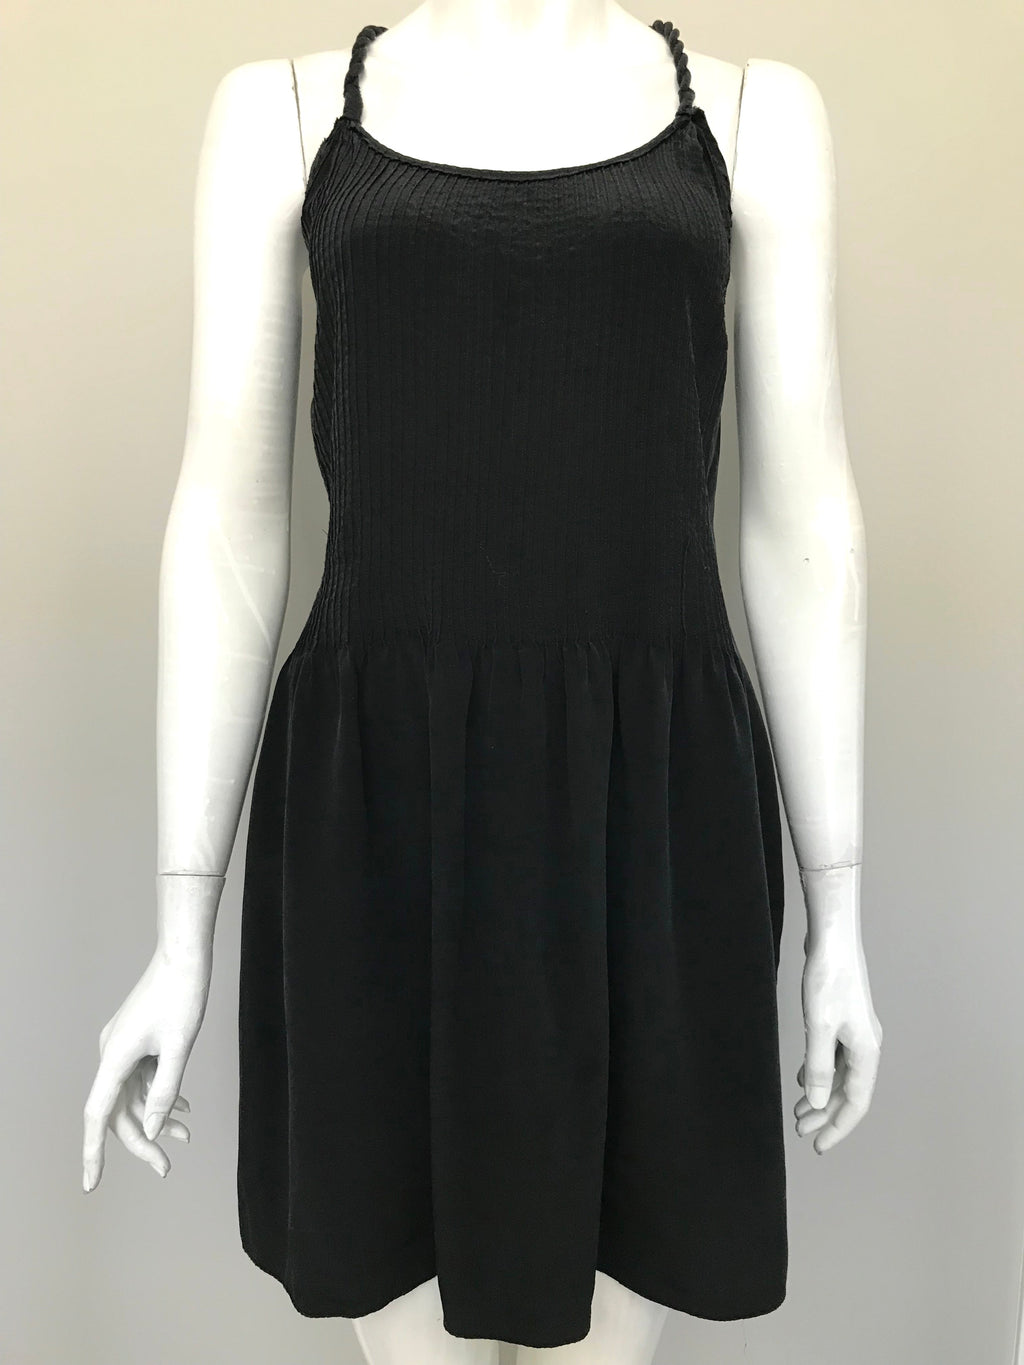 Banana Republic Grey Silk Dress Size 6